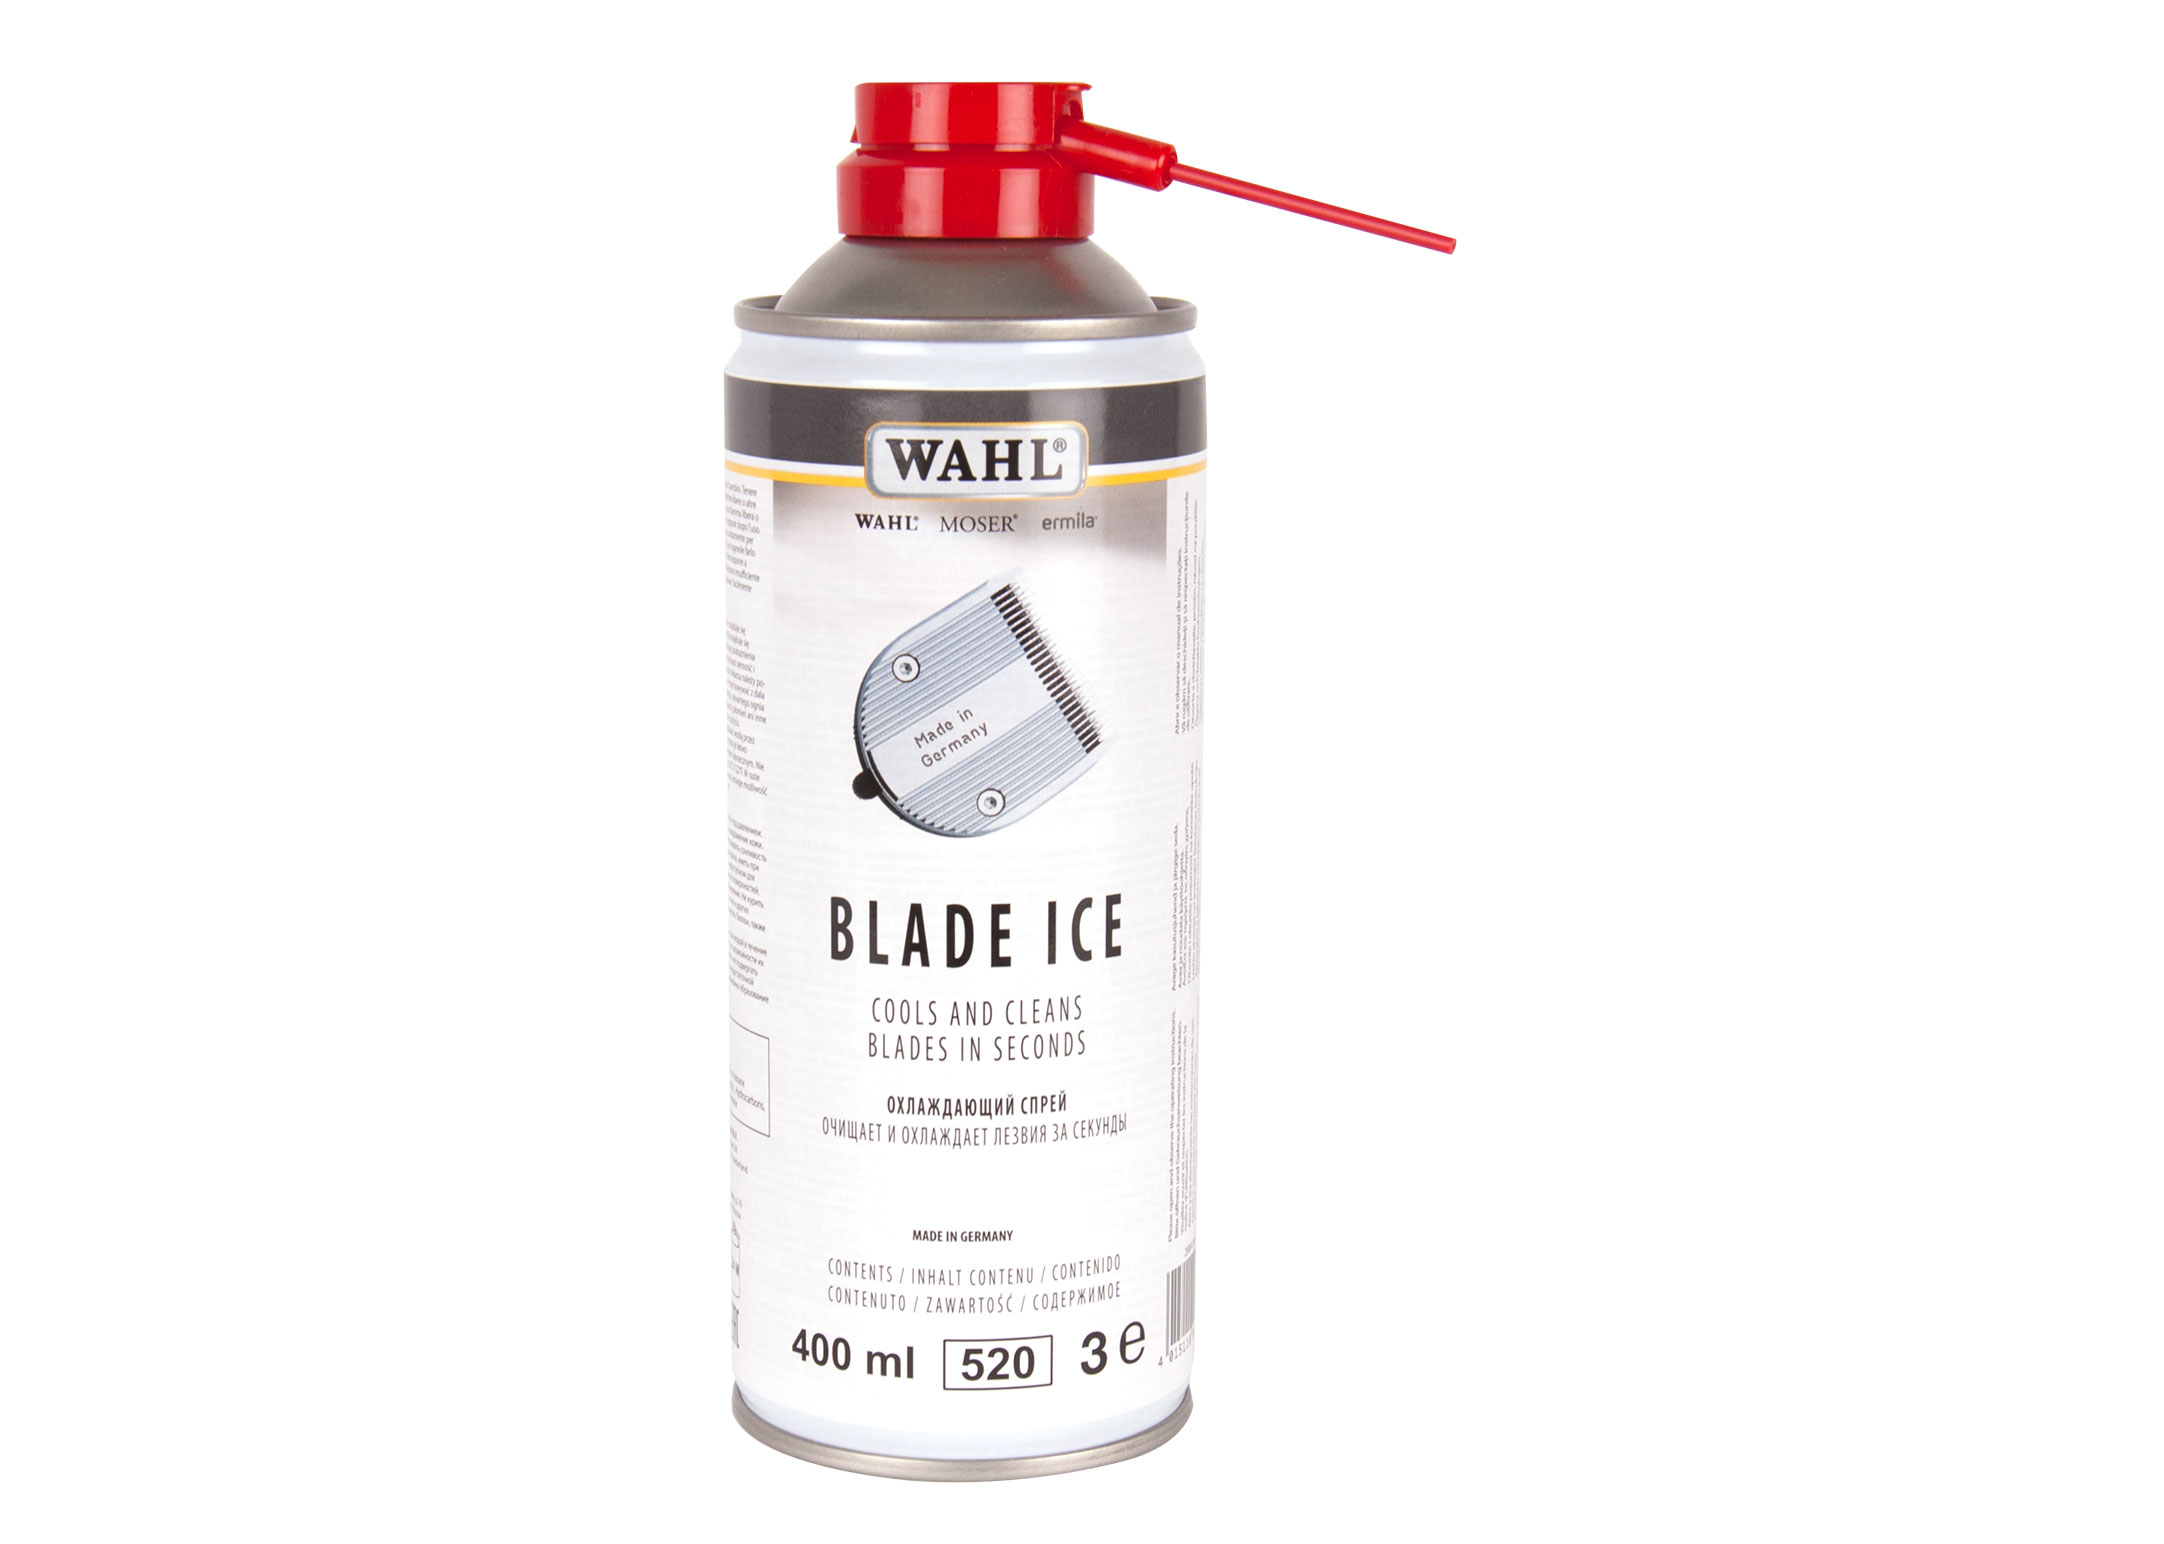 Wahl Blade Ice Spray 400 ml Blade Care